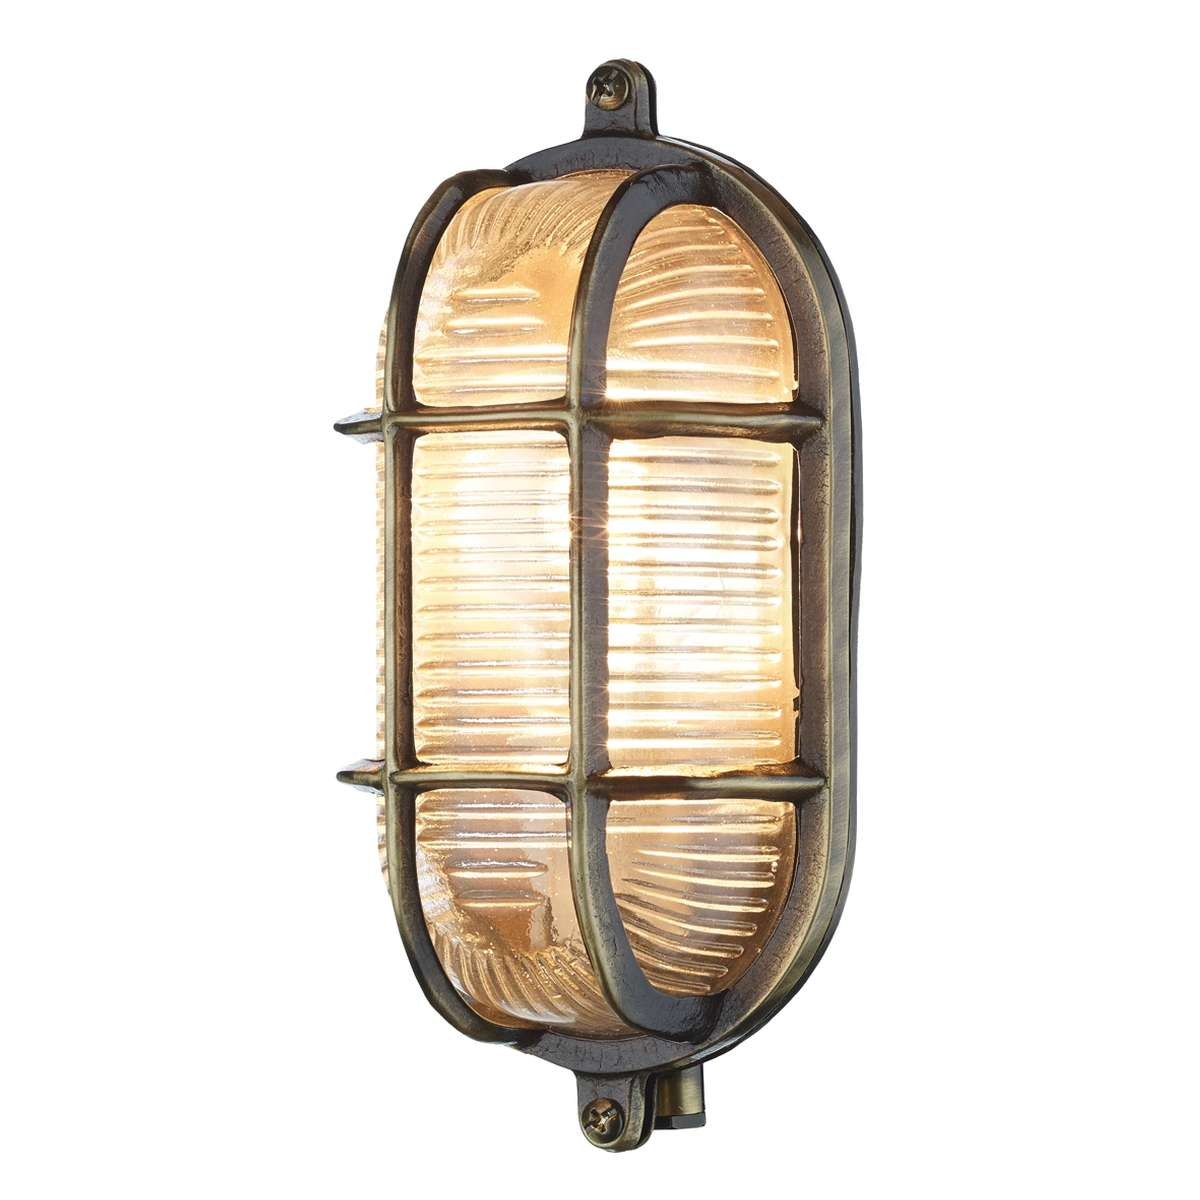 Admiral Small Oval Wall Light Antique Brass